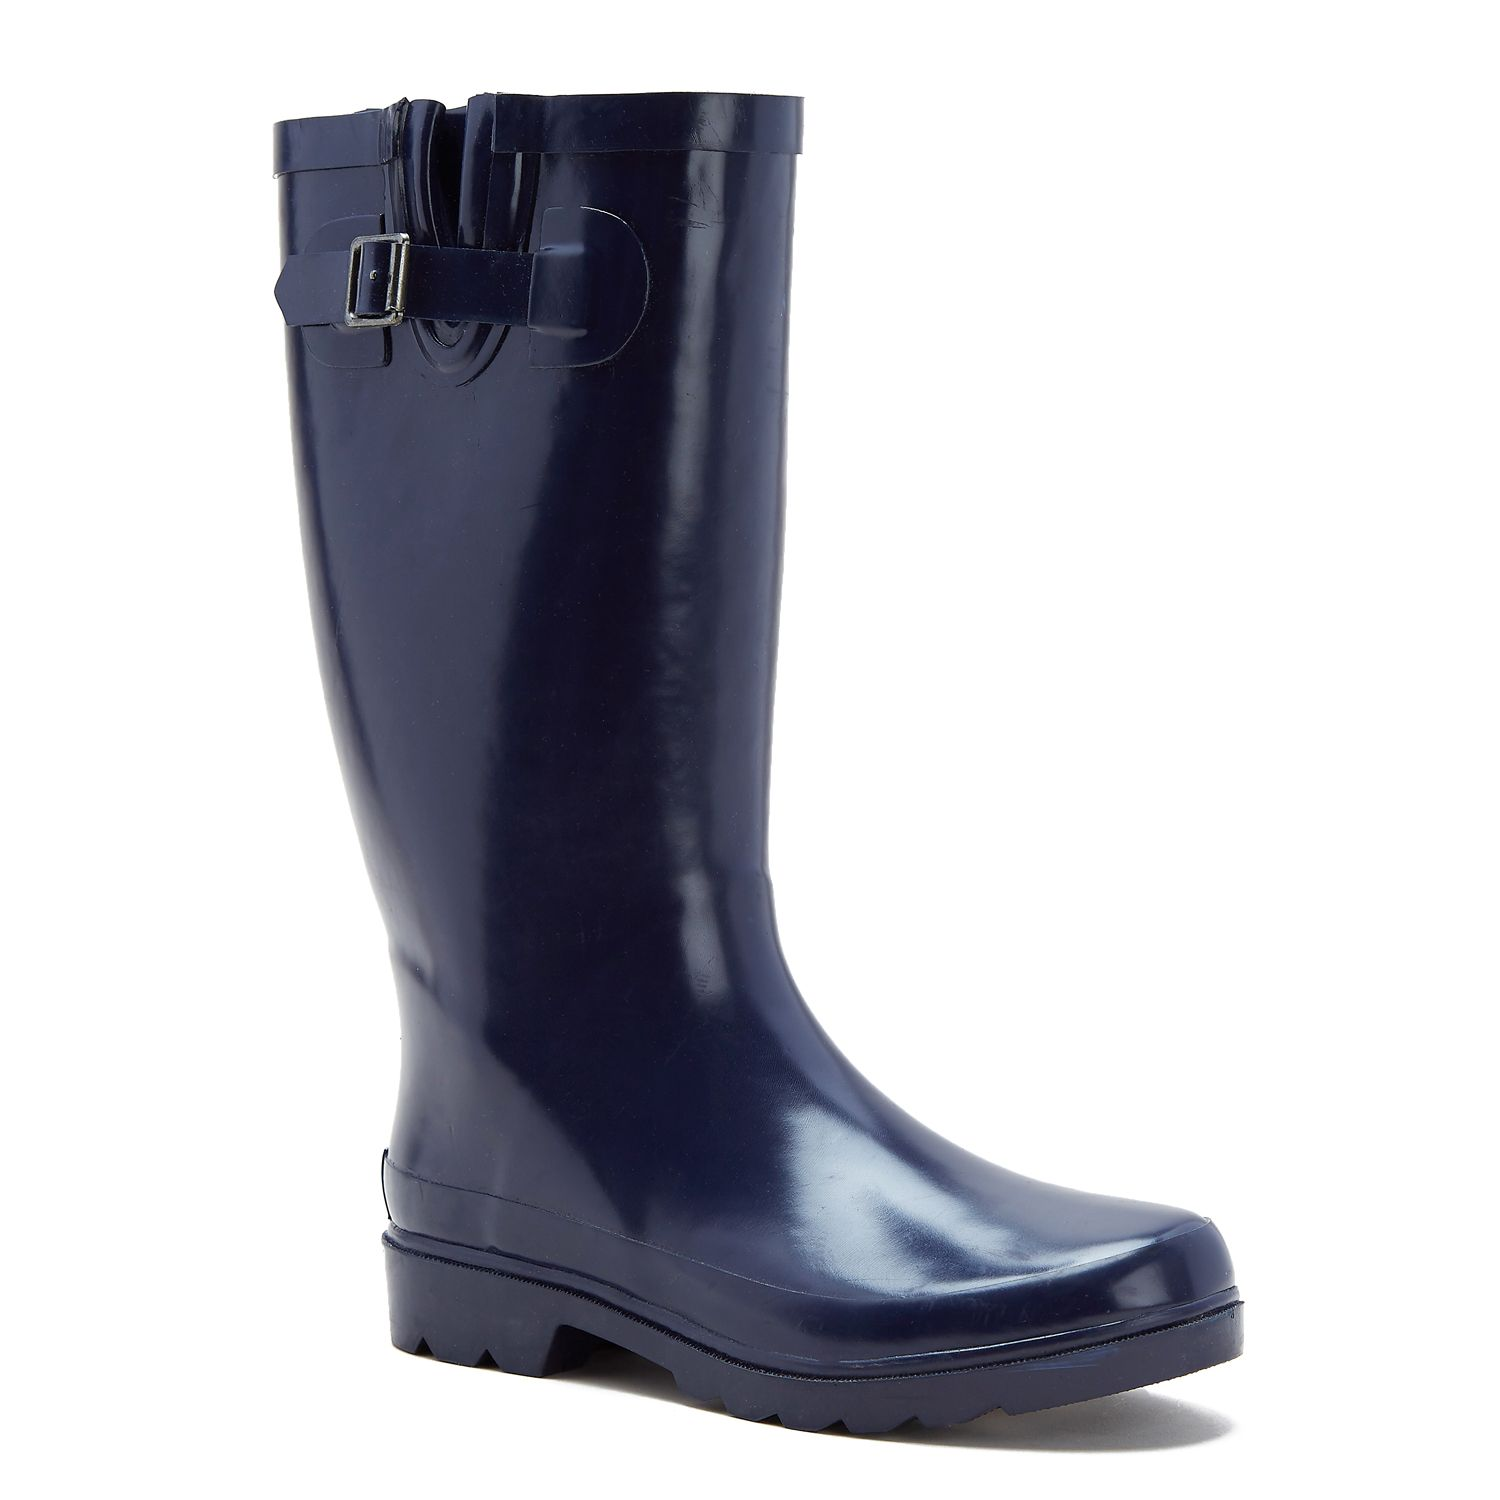 Black Rain Boots With Red Zipper - Boot Hto